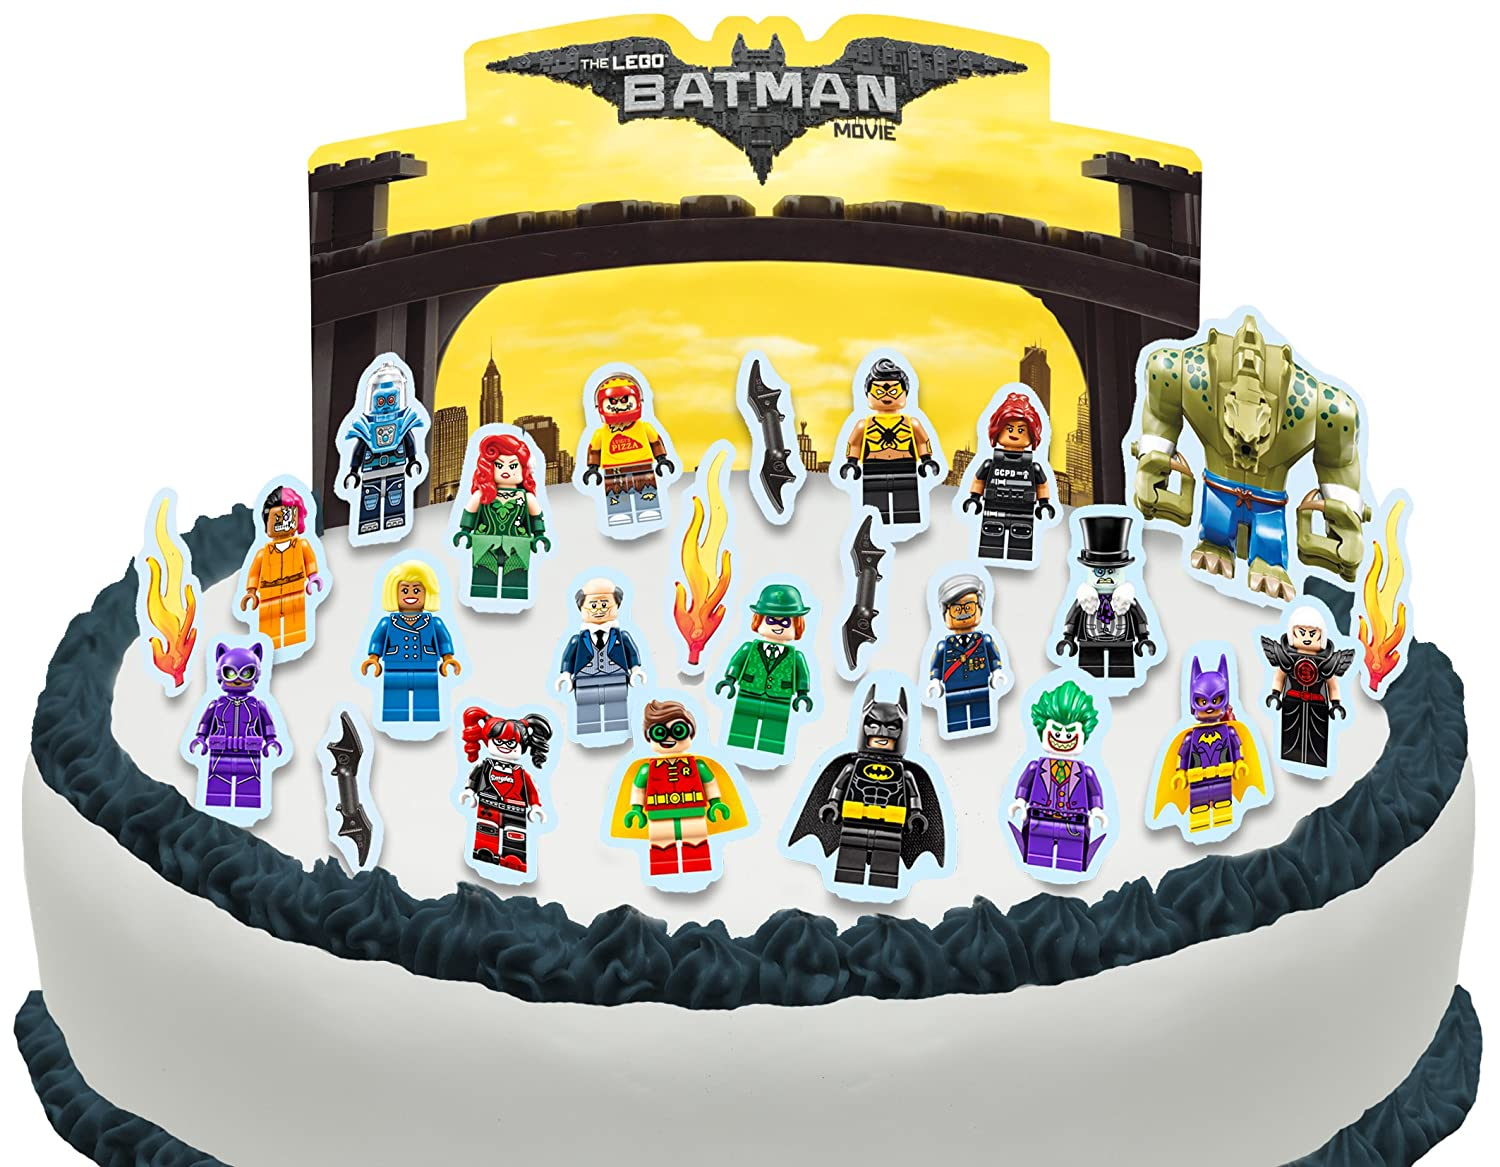 A4 The Batman Lego Movie Birthday Cake Topper Amazoncouk Grocery